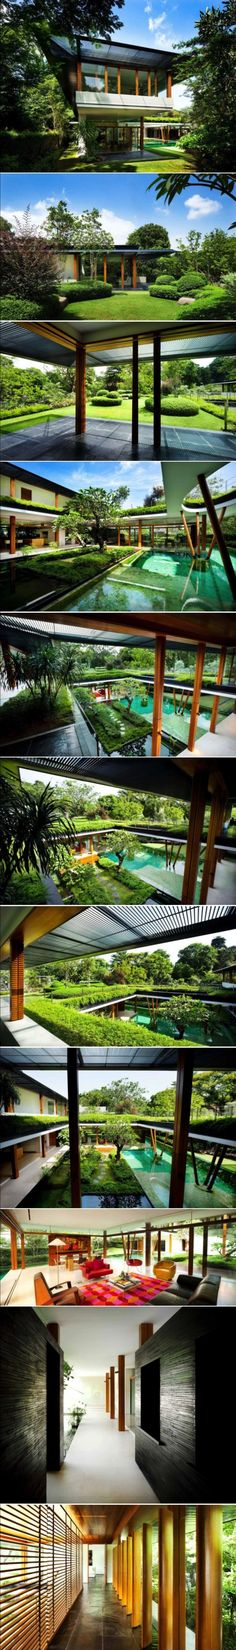 Water Lily House by Guz Architects / Water Lily House is a private residence located in Singapore.  The spacious home was designed by Guz Architects.